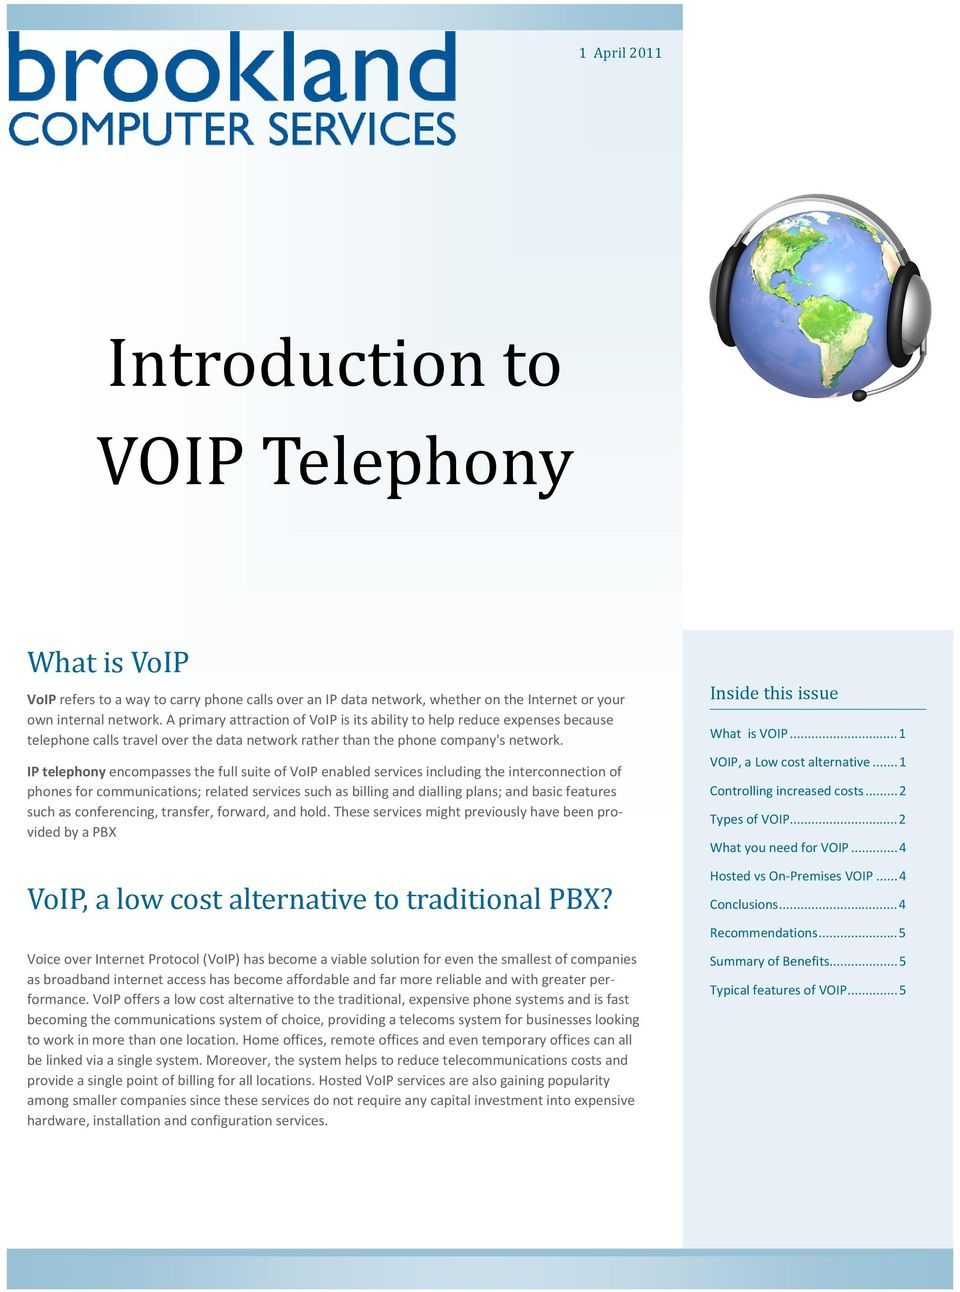 IP telephony encompasses the full suite of VoIP enabled services including the interconnection of phones for communications; related services such as billing and dialling plans; and basic features